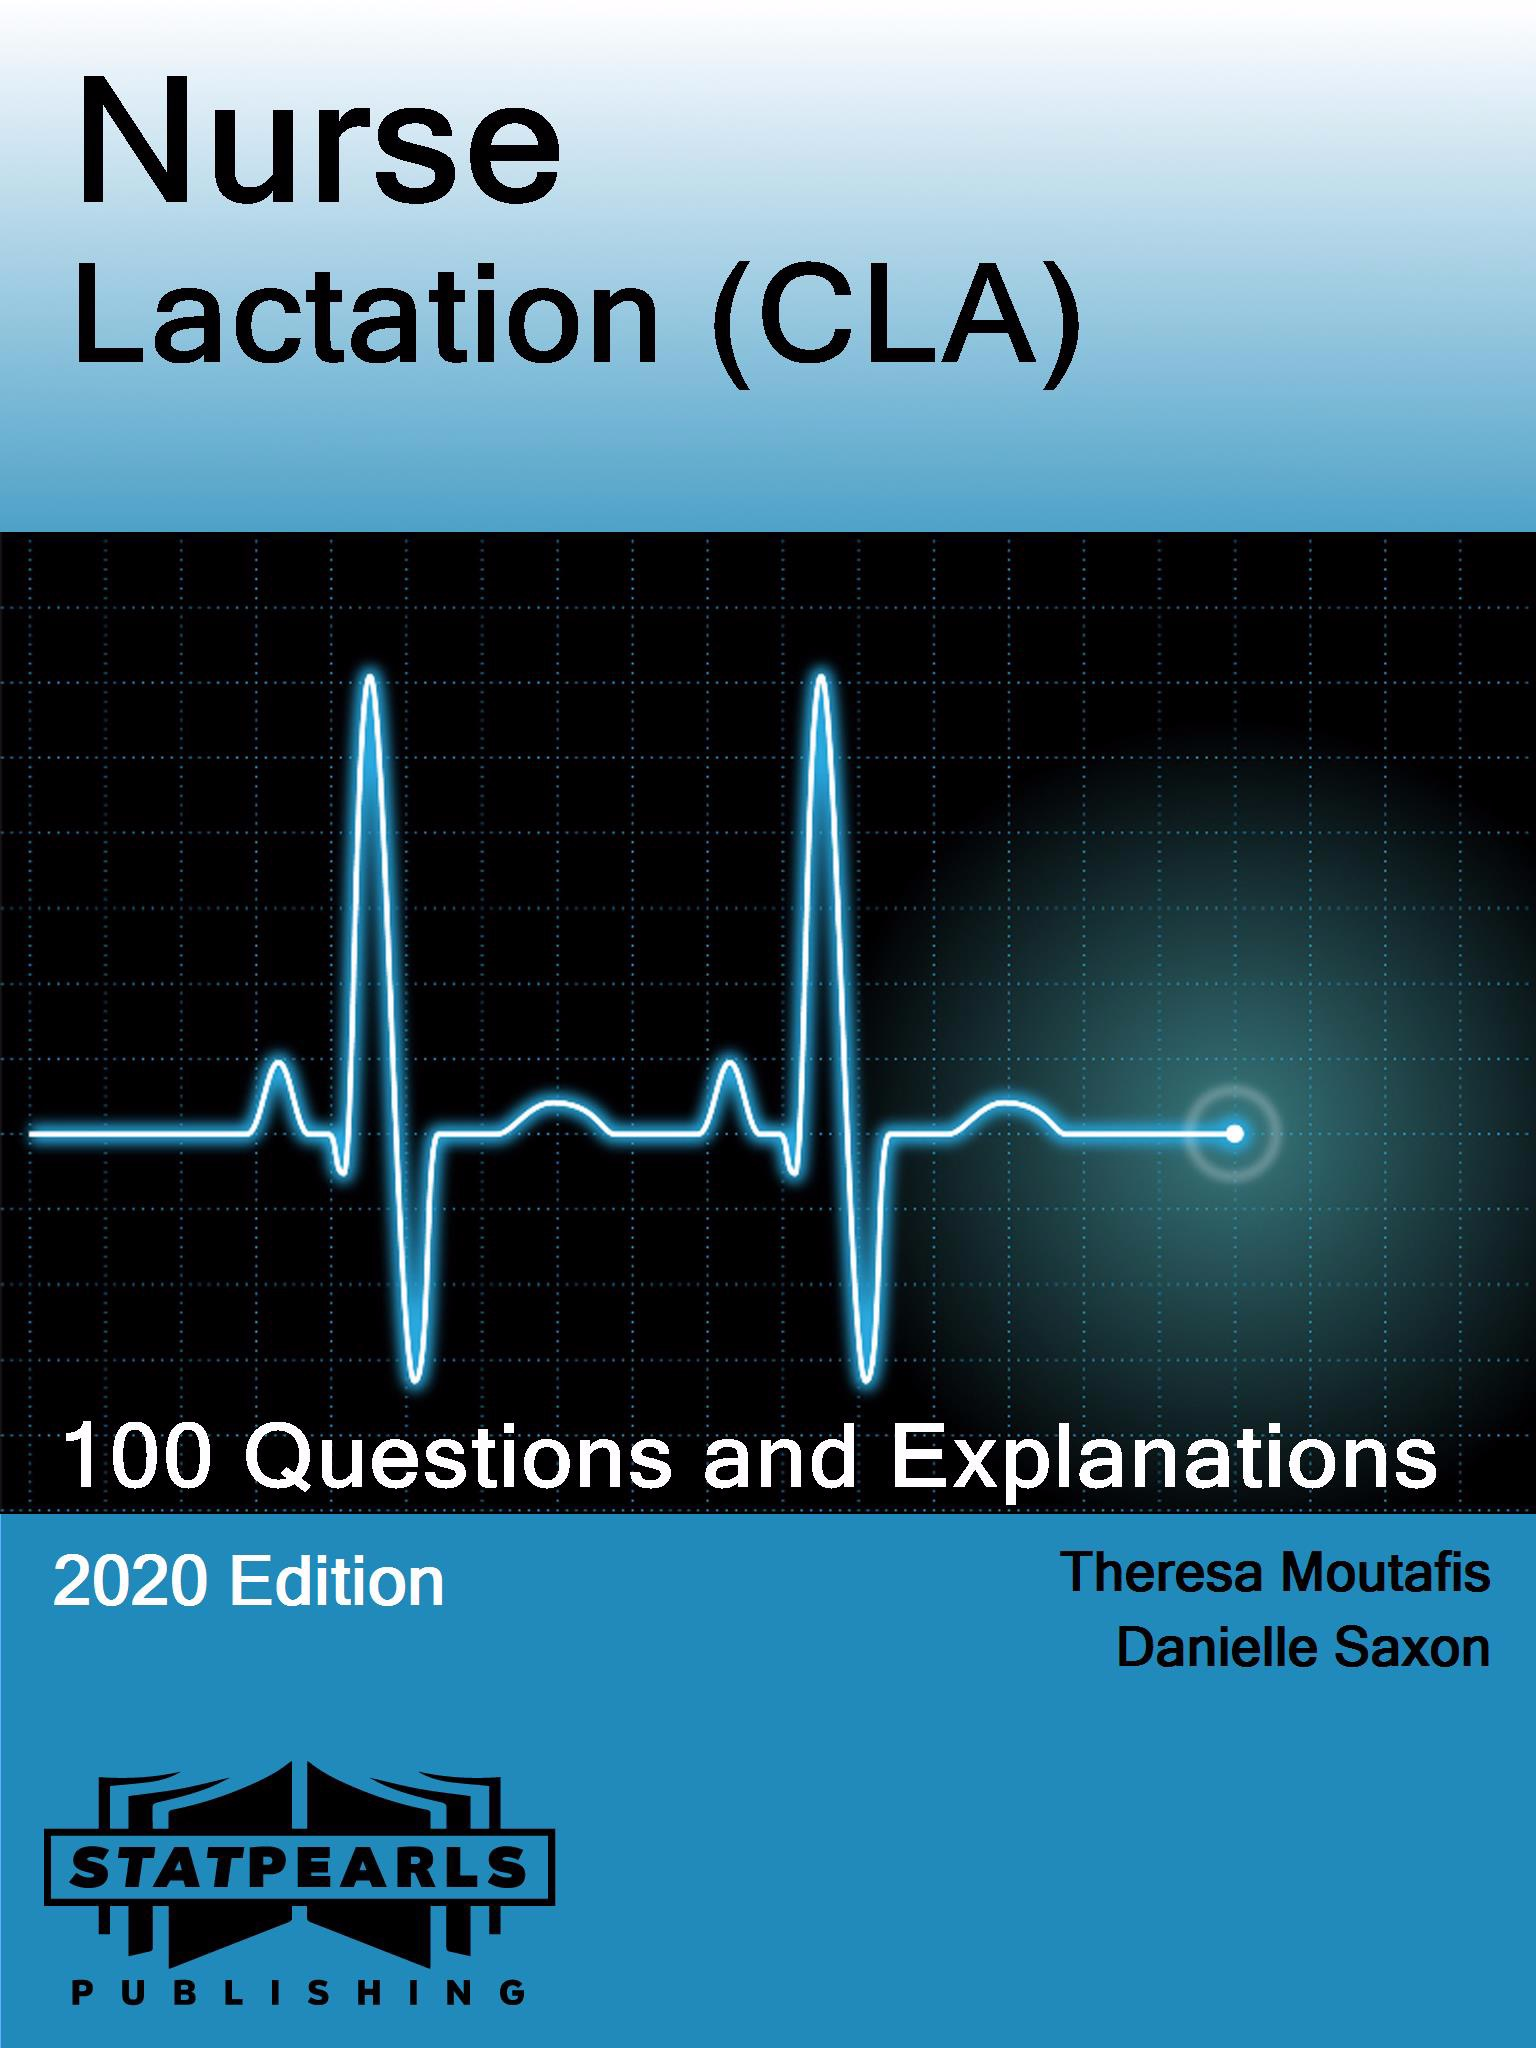 Nurse Lactation (CLA)